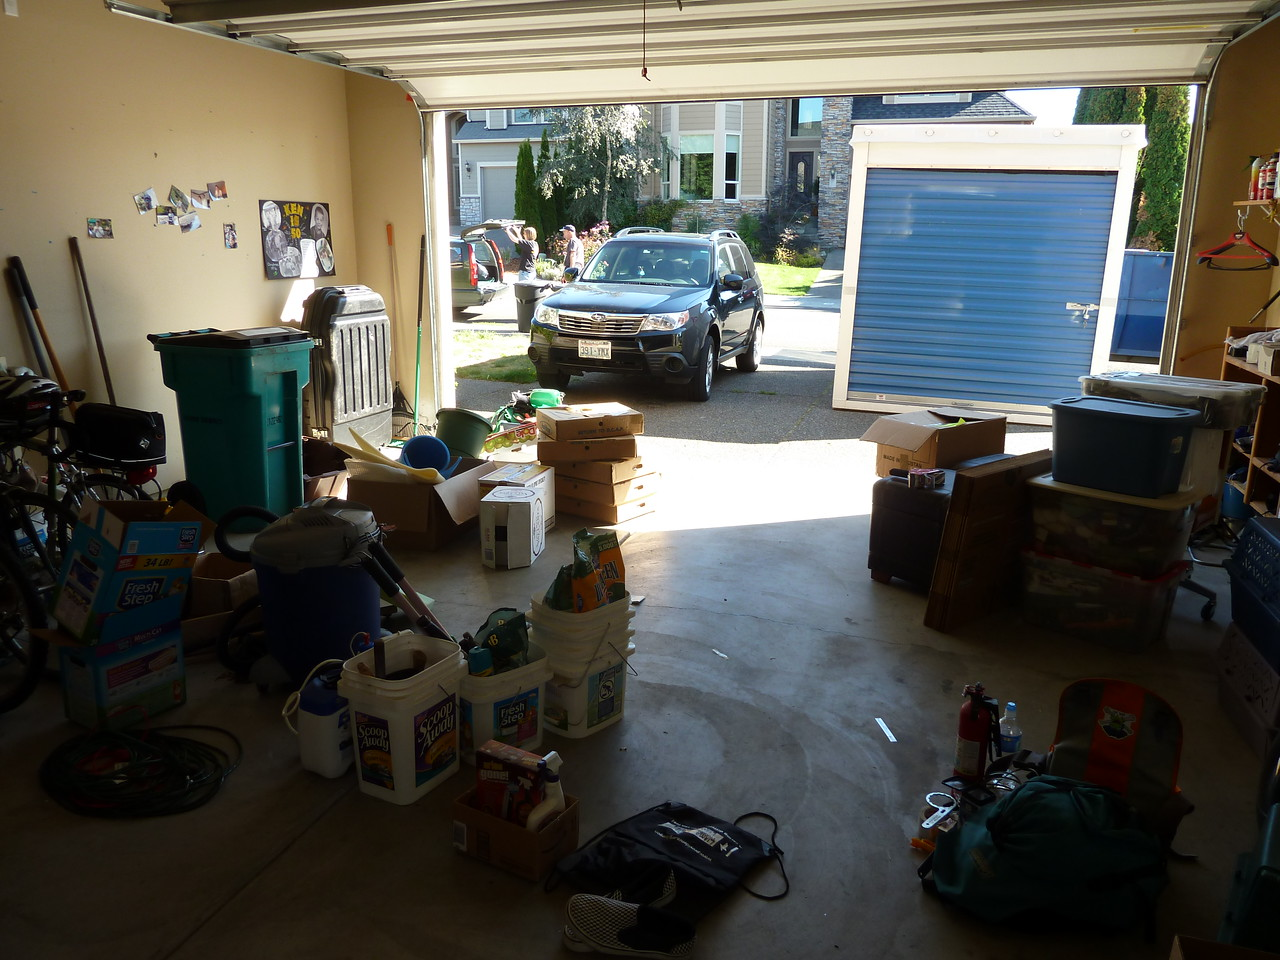 Sorted piles in garage. Stuff for Dean and Ted, stuff for the POD, donations, garbage, much more.